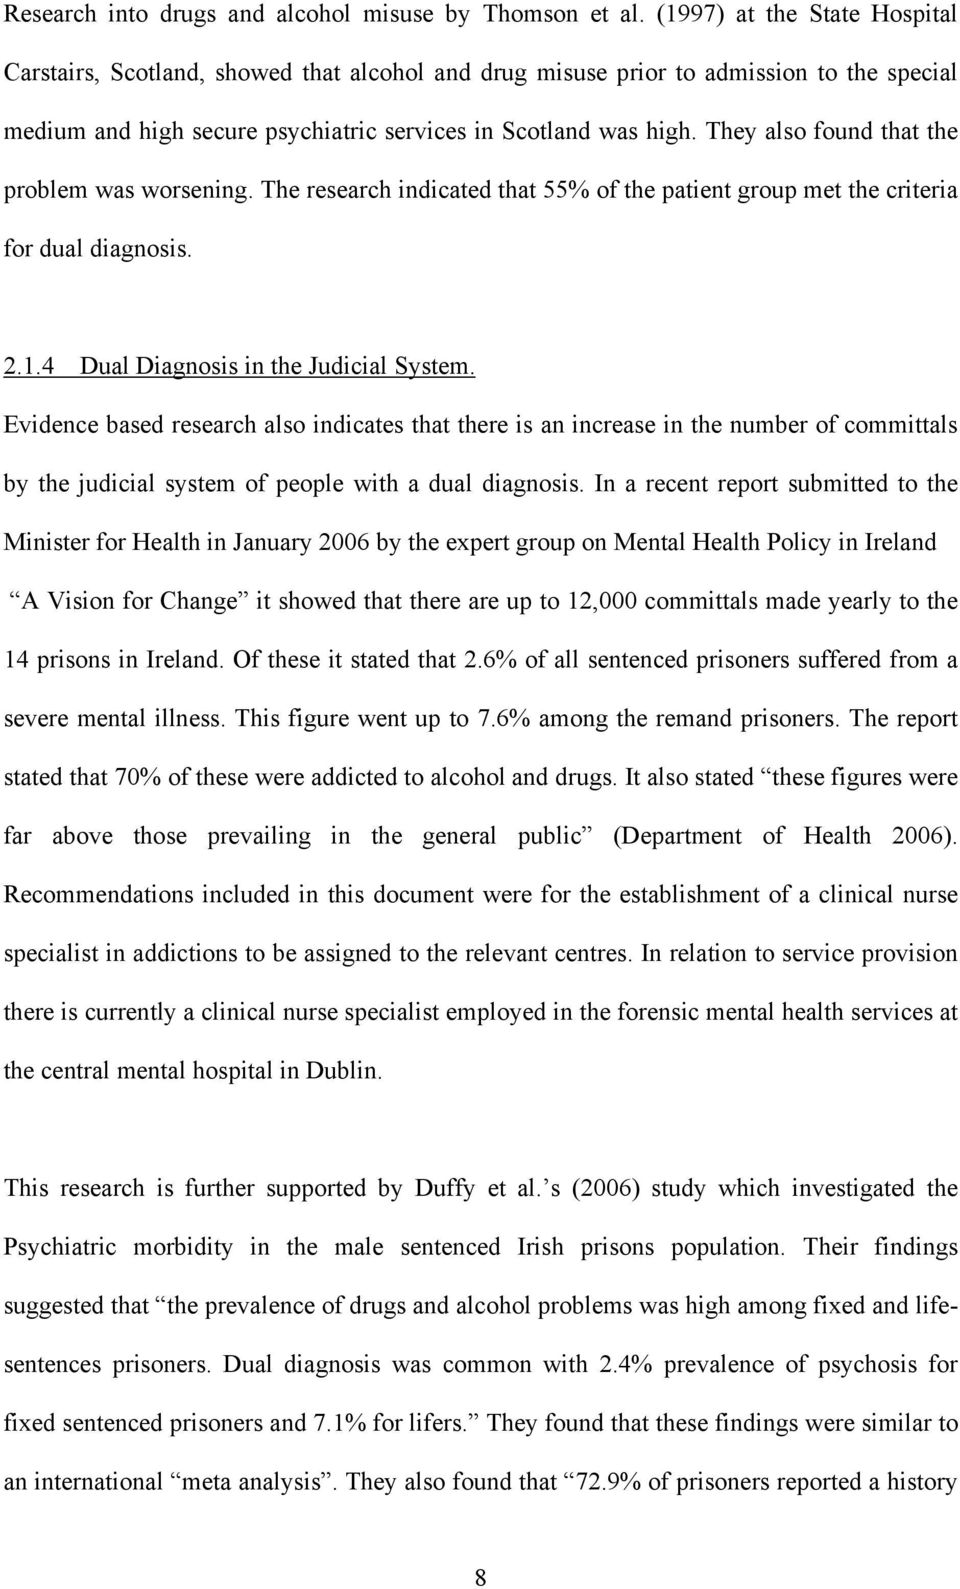 They also found that the problem was worsening. The research indicated that 55% of the patient group met the criteria for dual diagnosis. 2.1.4 Dual Diagnosis in the Judicial System.